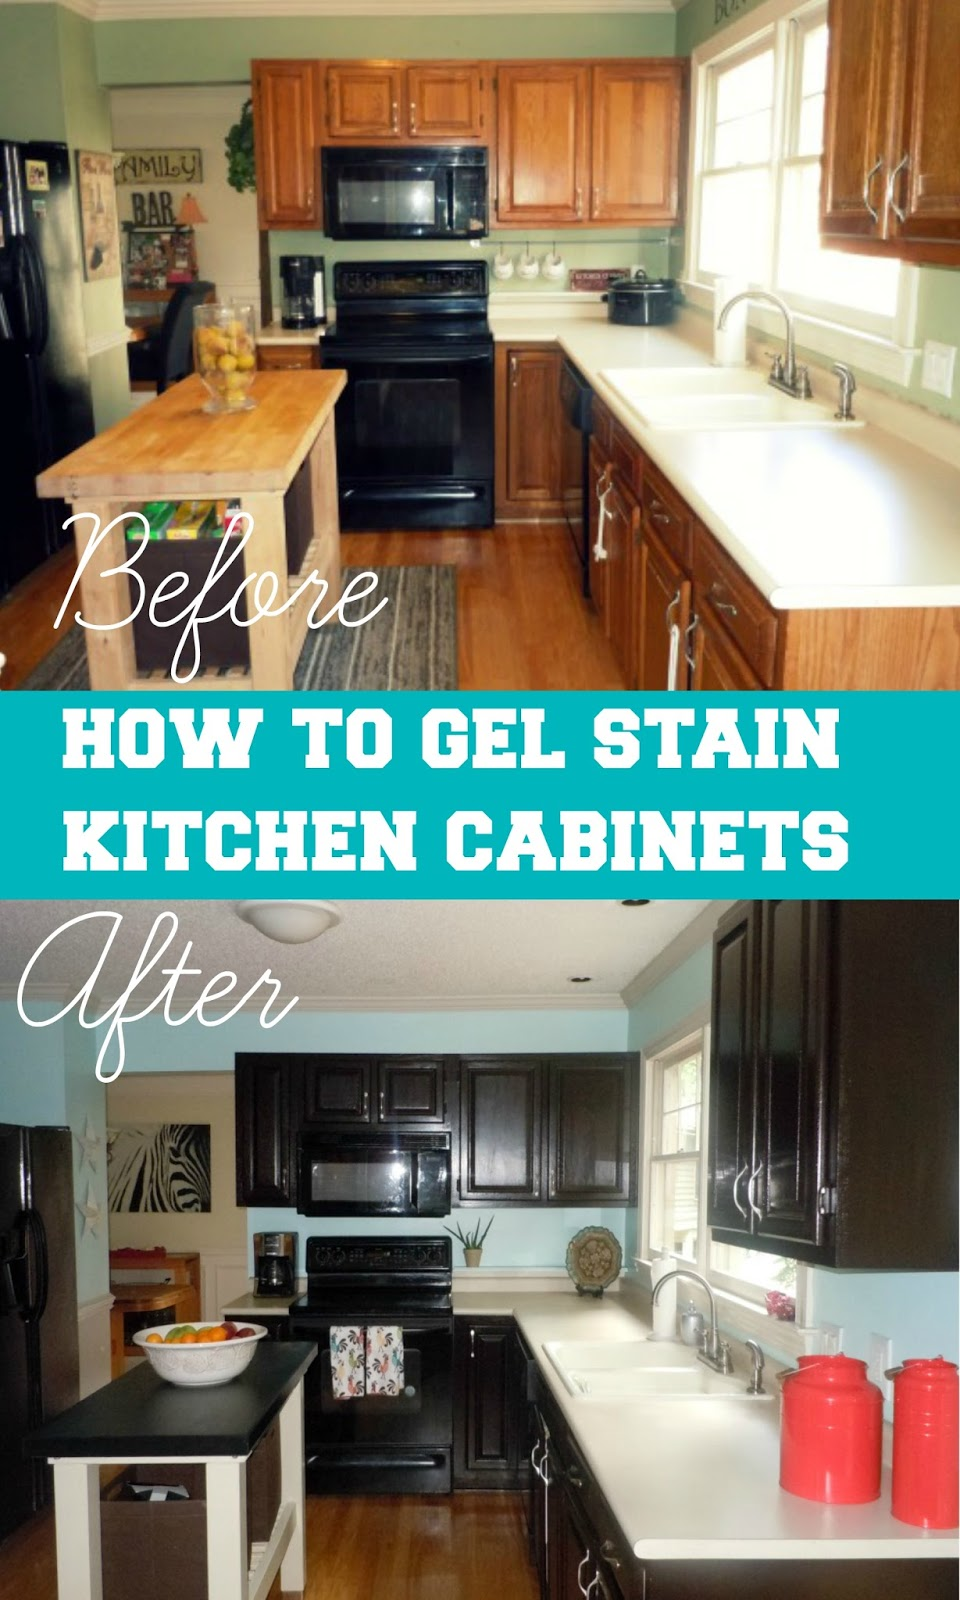 How To Gel Stain Your Kitchen Cabinets | Simple DIY Projects ...